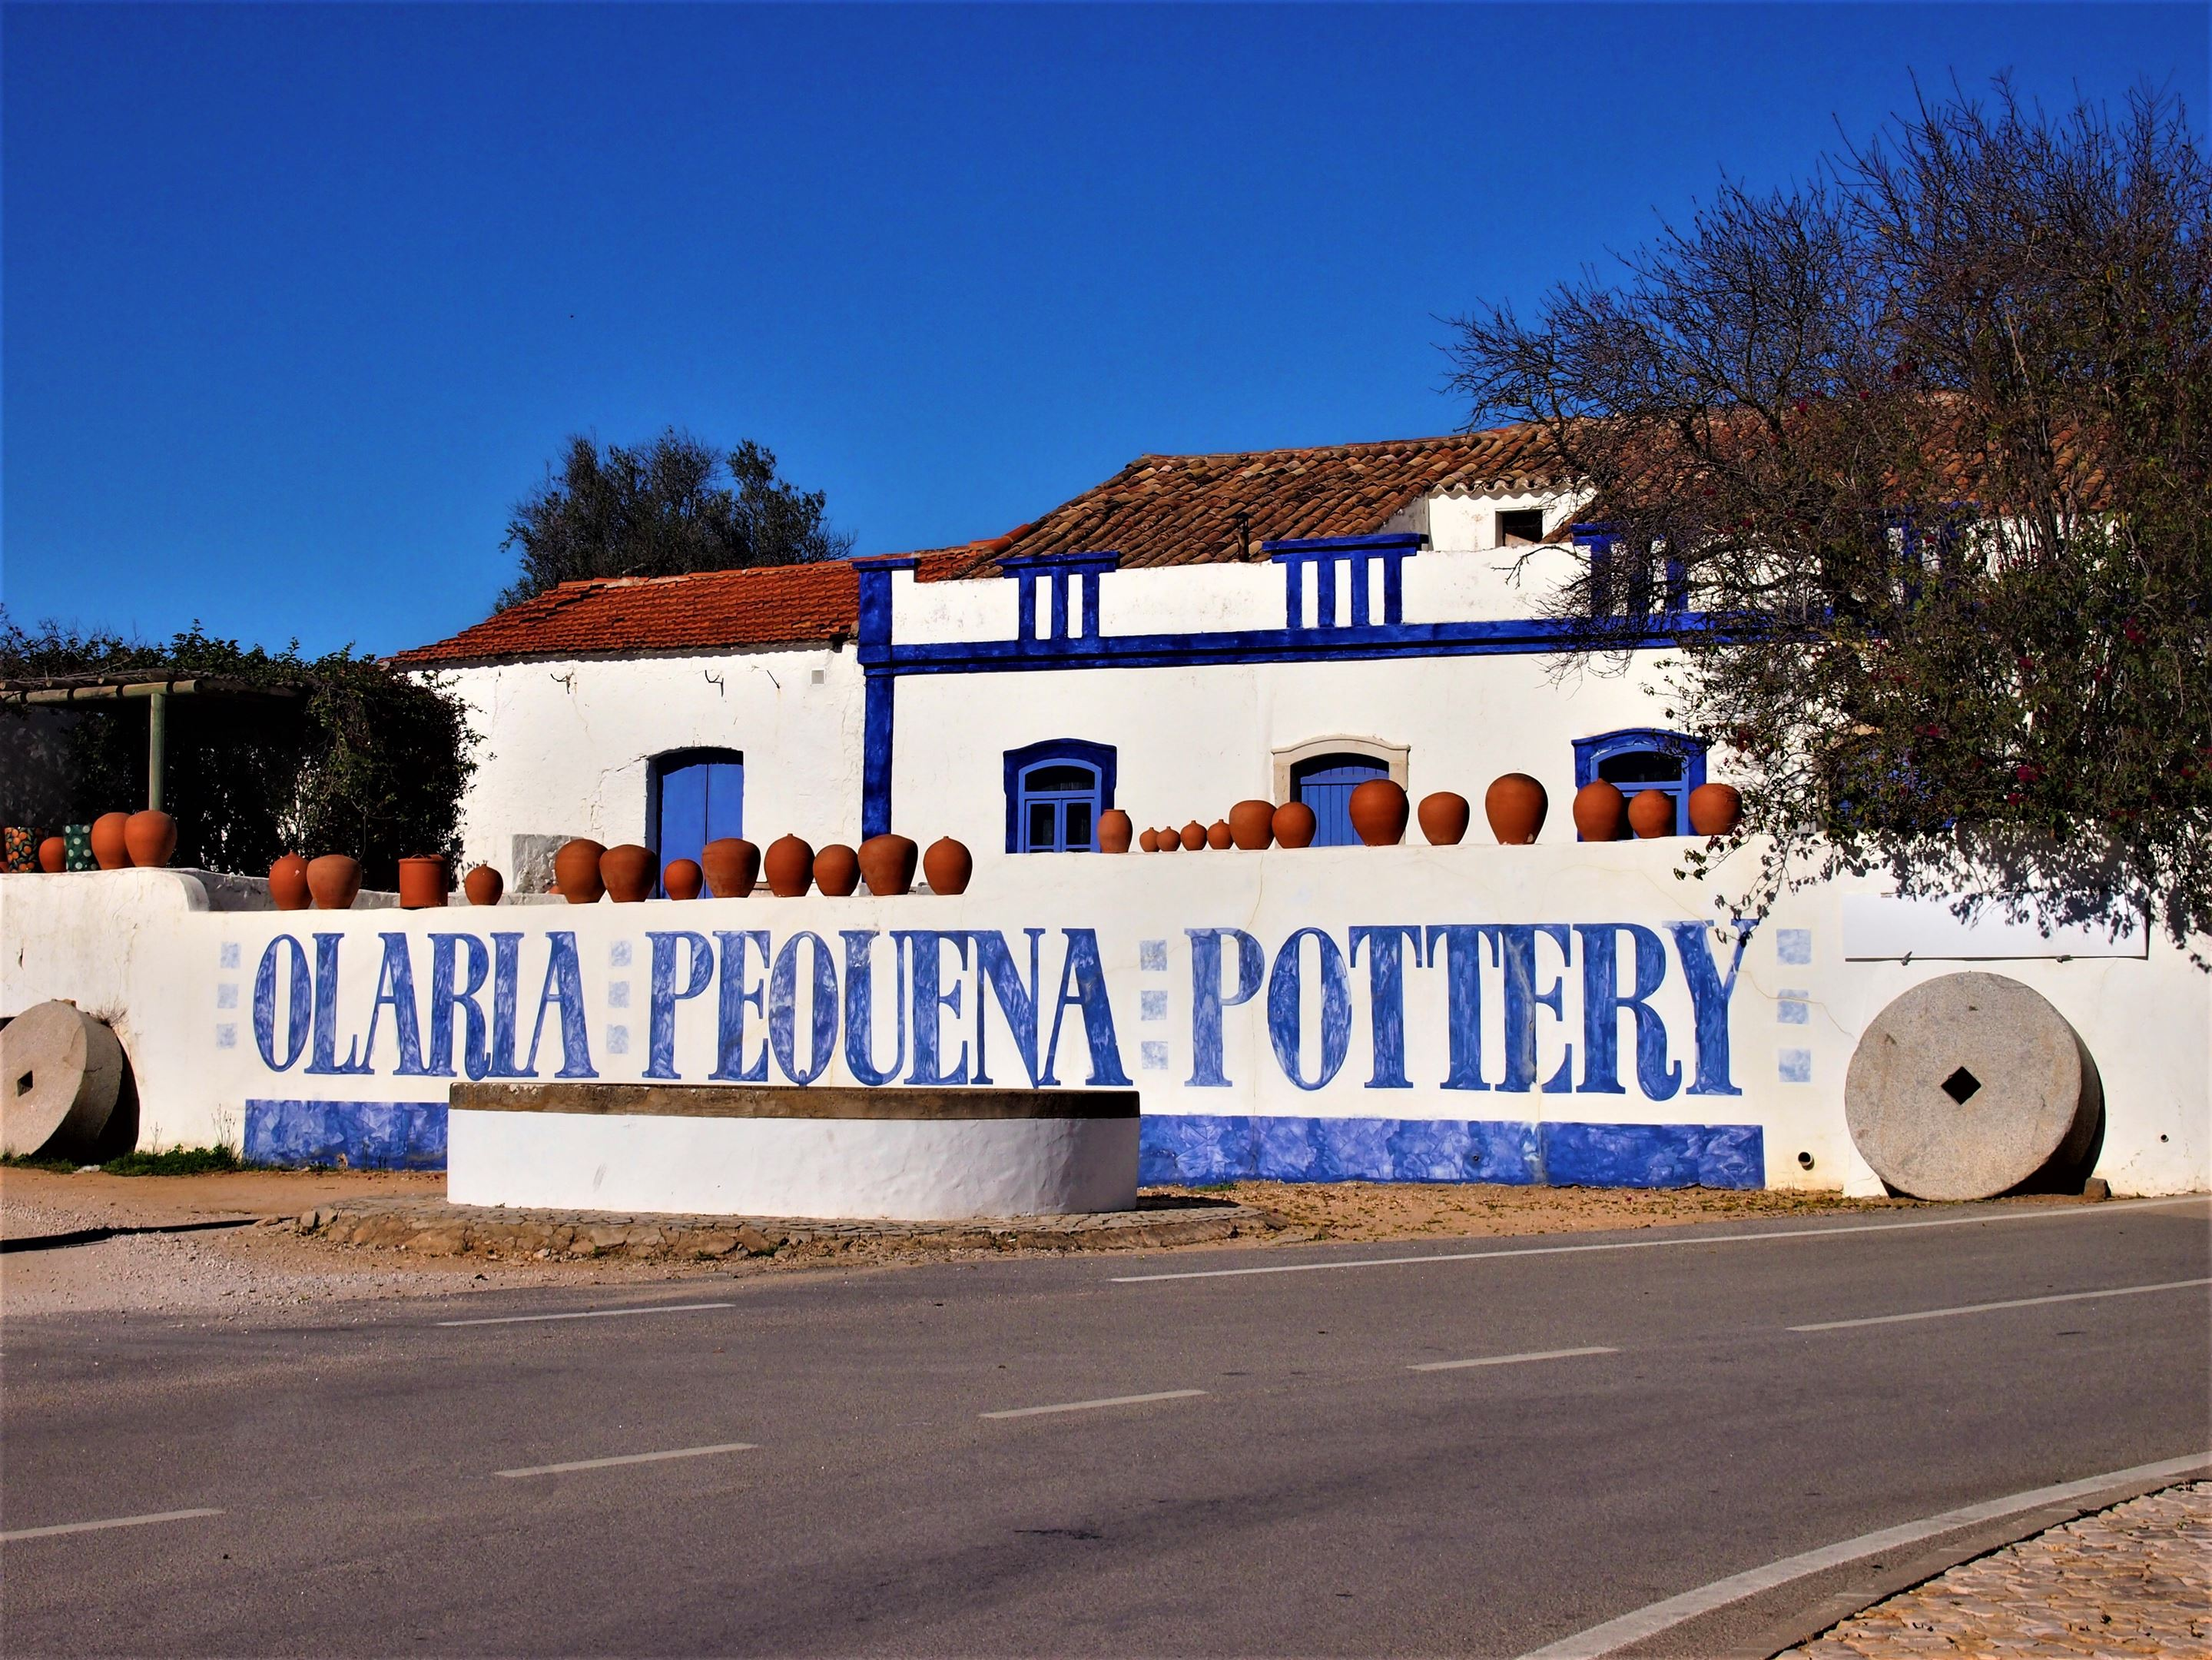 Olaria Pequena Pottery, Porches